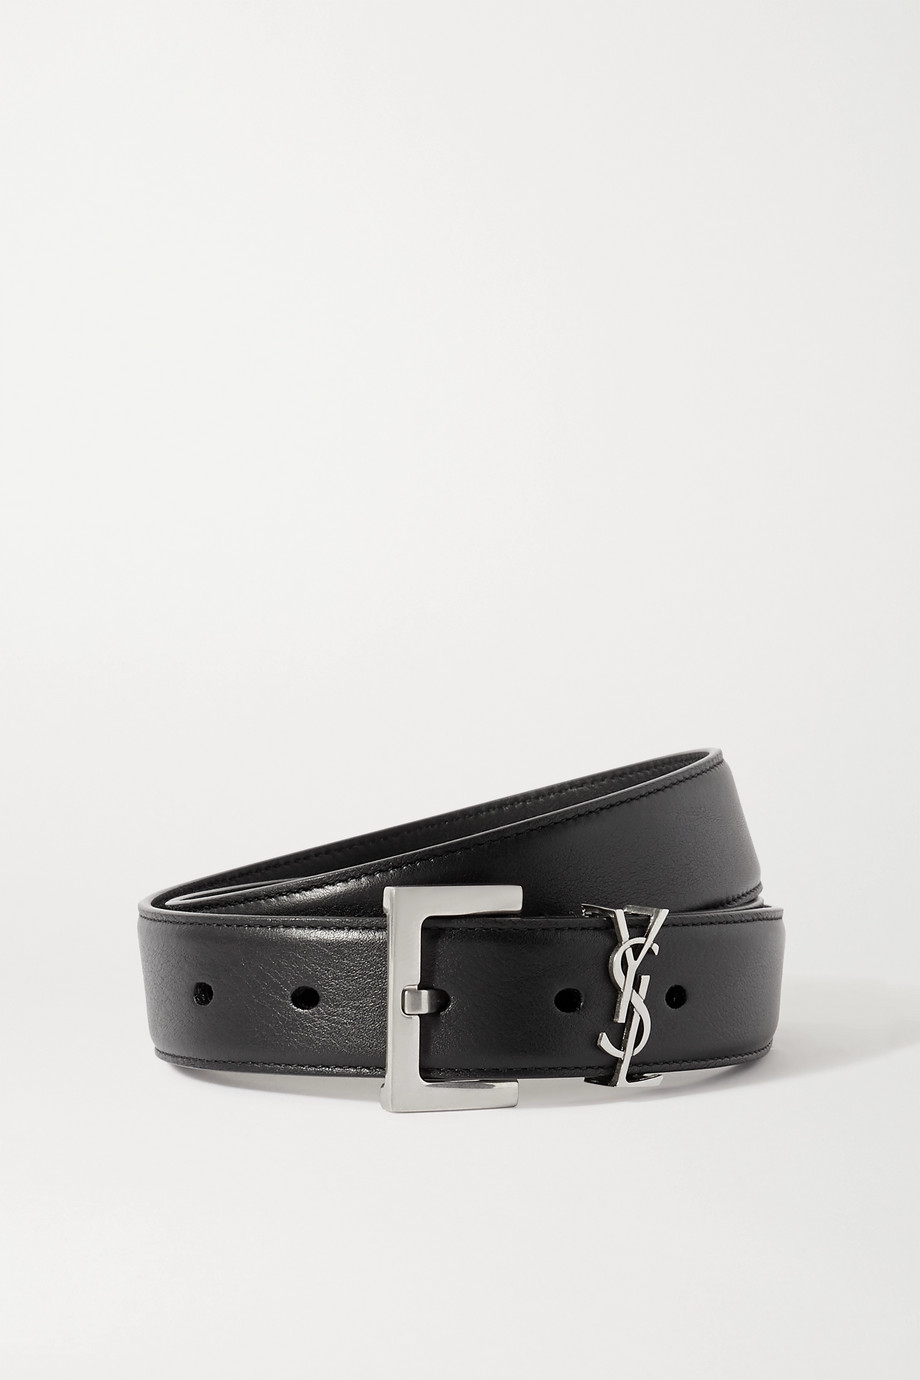 SAINT LAURENT Monogramme 皮革腰带